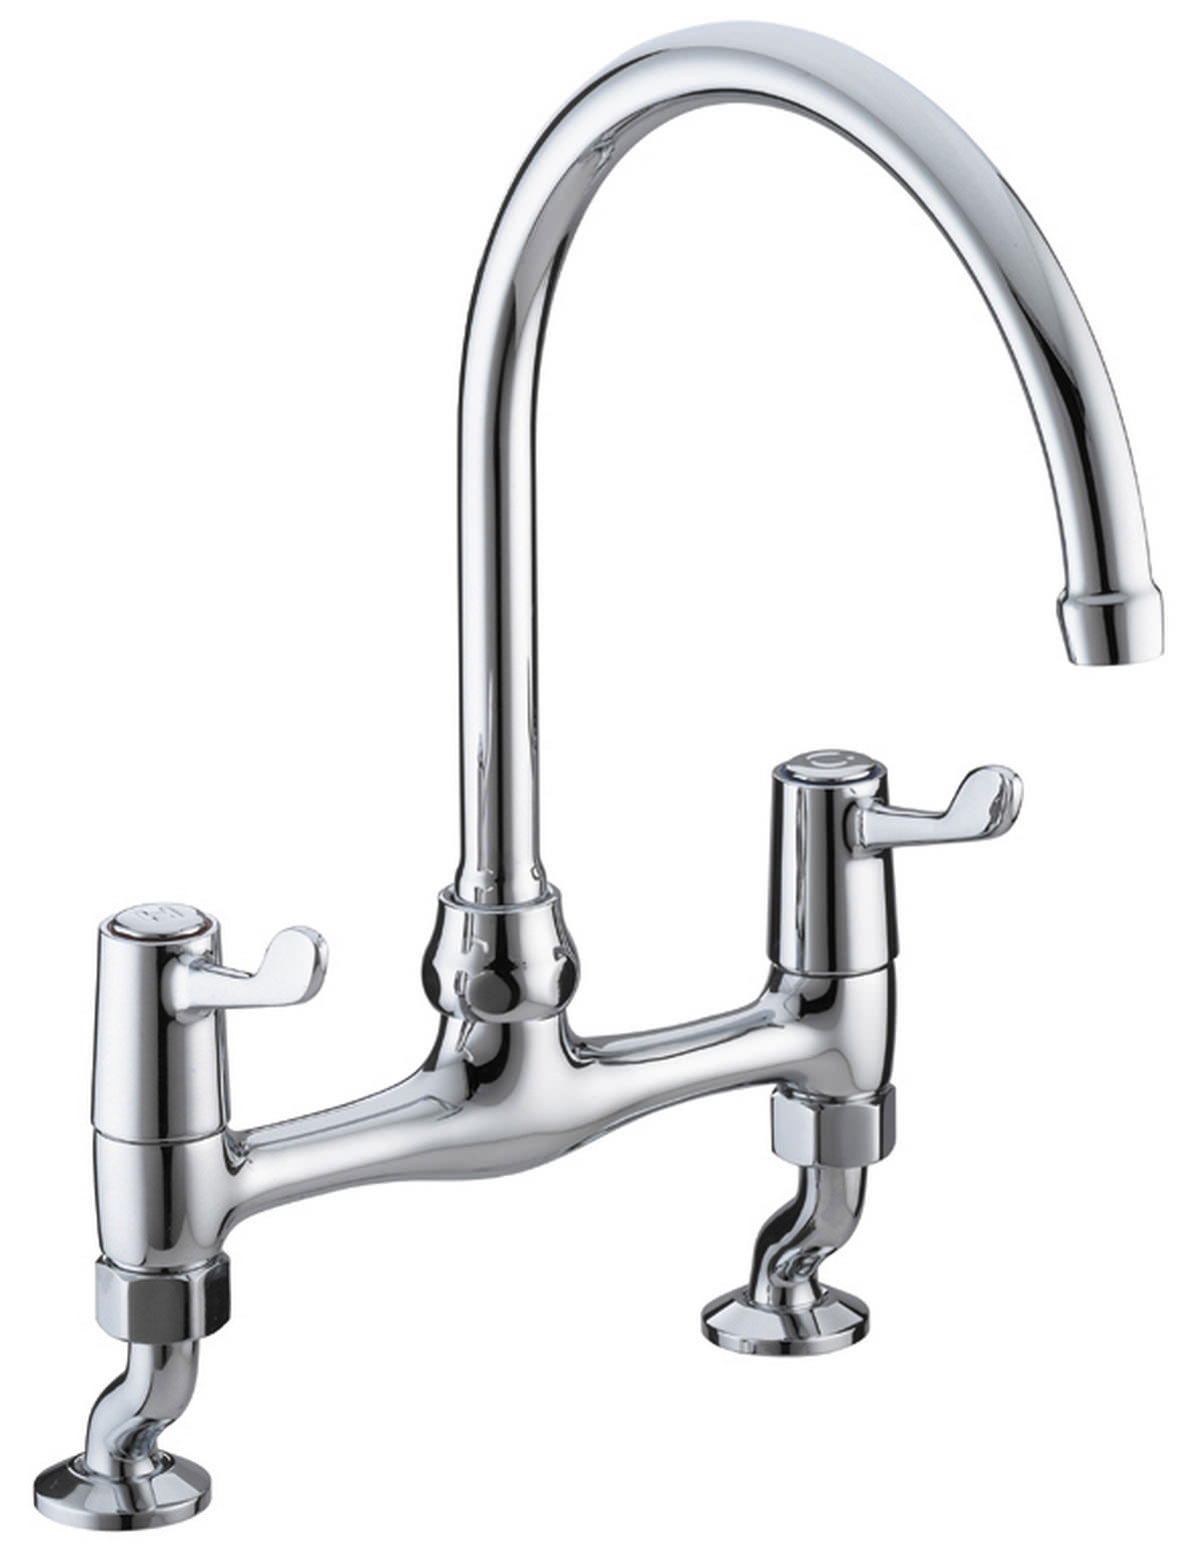 Mixer Taps For Kitchen Sink Bristan value lever bridge deck sink mixer tap val brdsm c cd workwithnaturefo